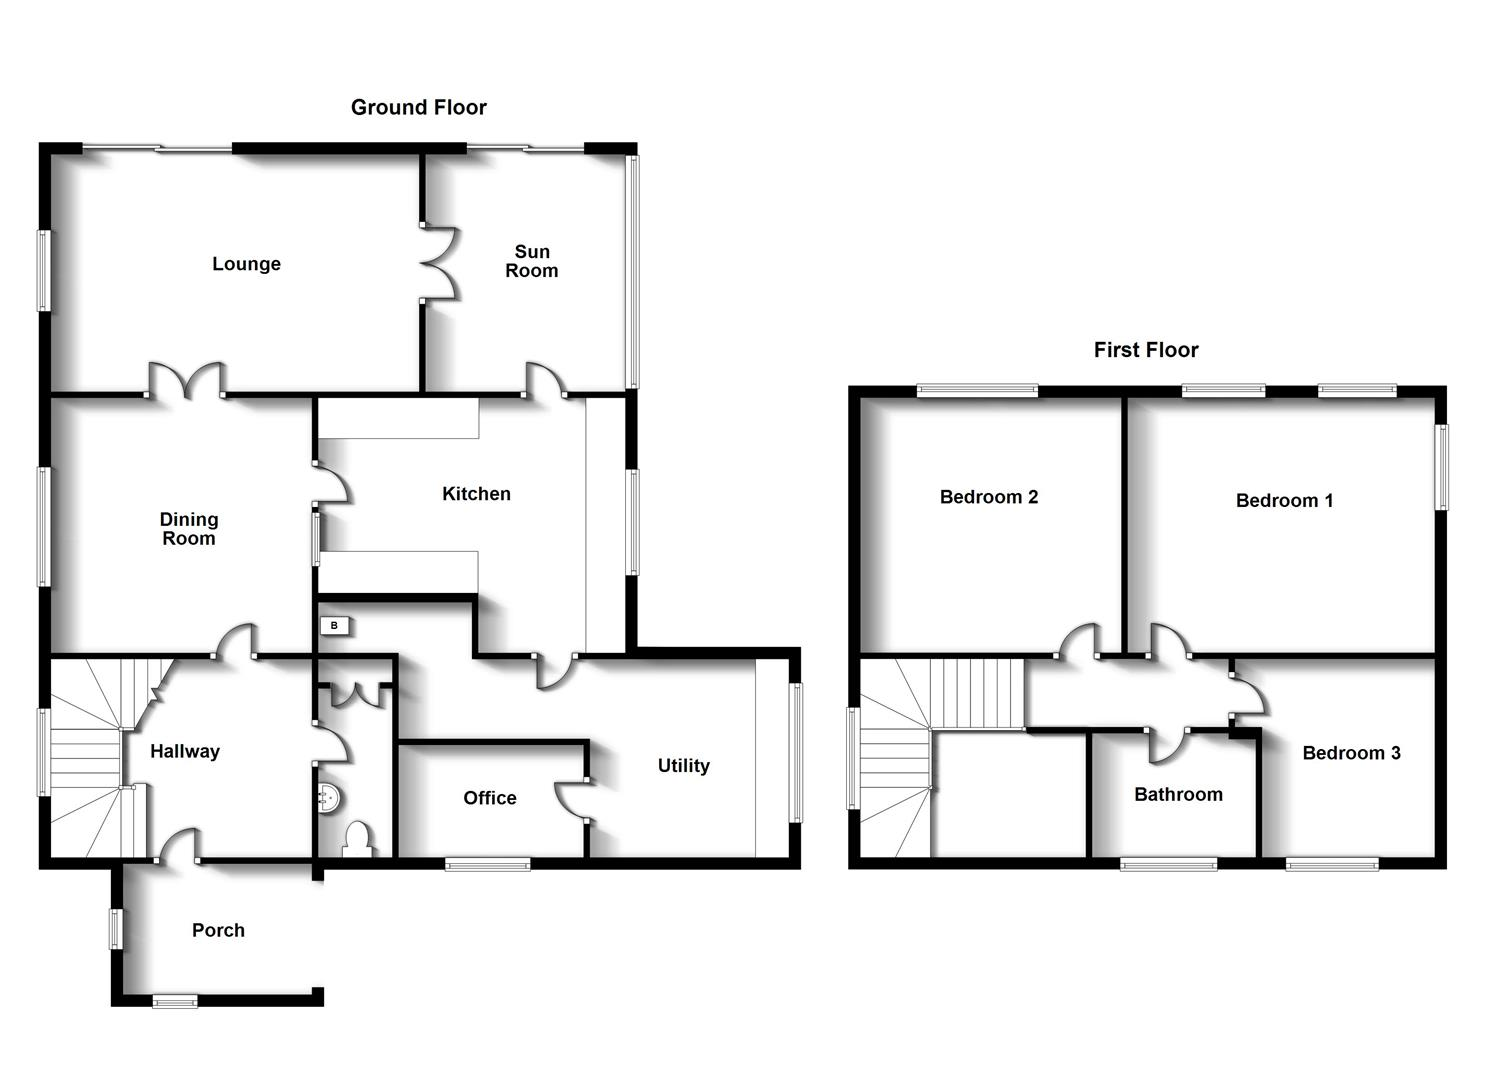 Floorplans For Church Lane, Thurlaston, Rugby